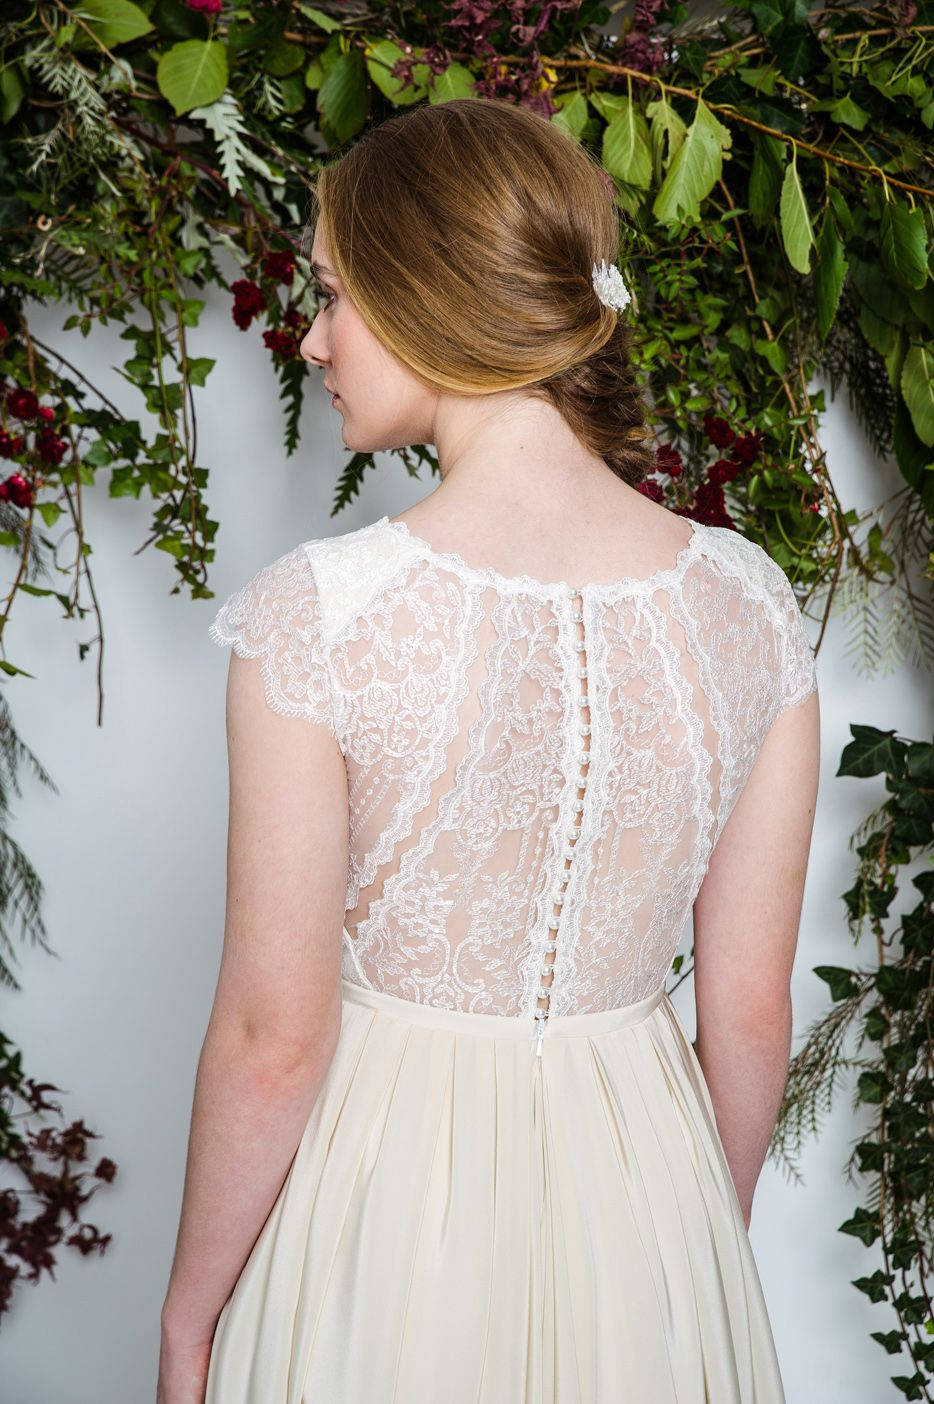 Diana Wedding Dress from Sally Eagle Bridal's Collection